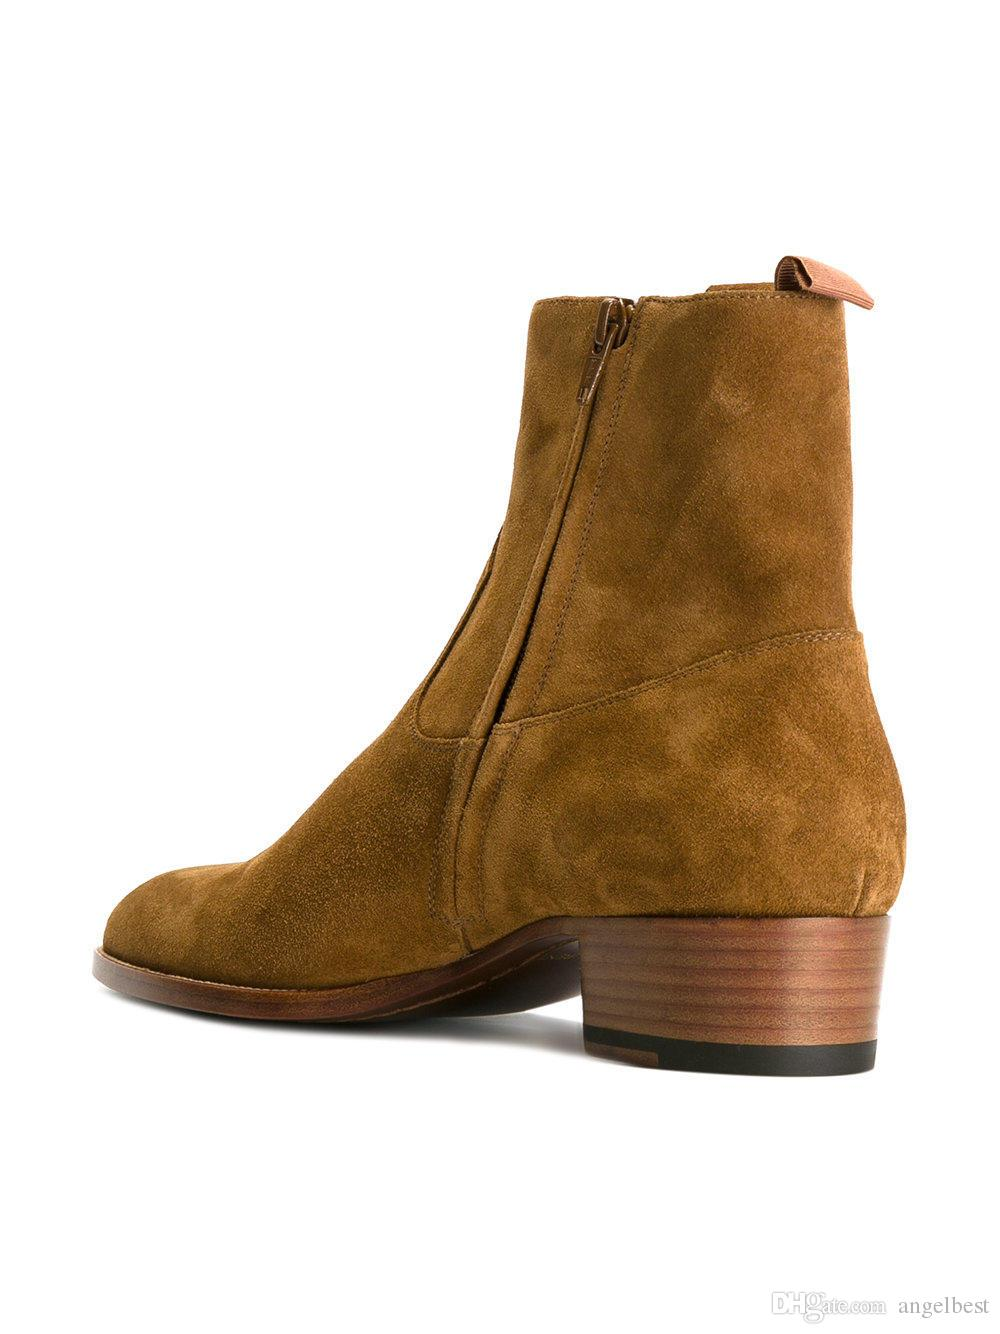 2017 Hot Fashion Tan Color High Tops Men Ankle Boots Suede Nubuck Leather Martin Boots Western Style Work Dress Shoes Autumn Boots